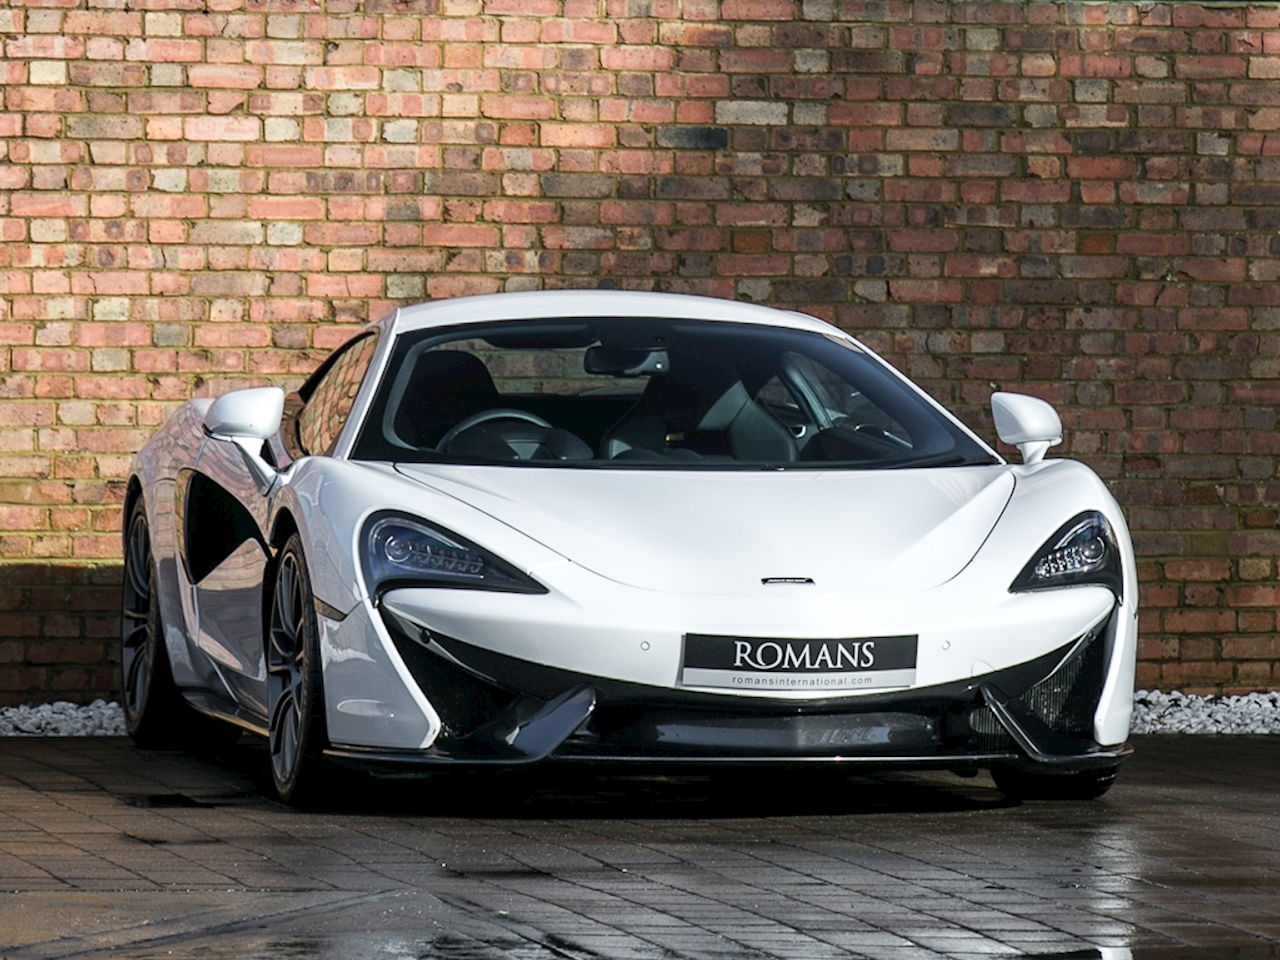 Used Mclaren 570s for Sale | Silverleaf